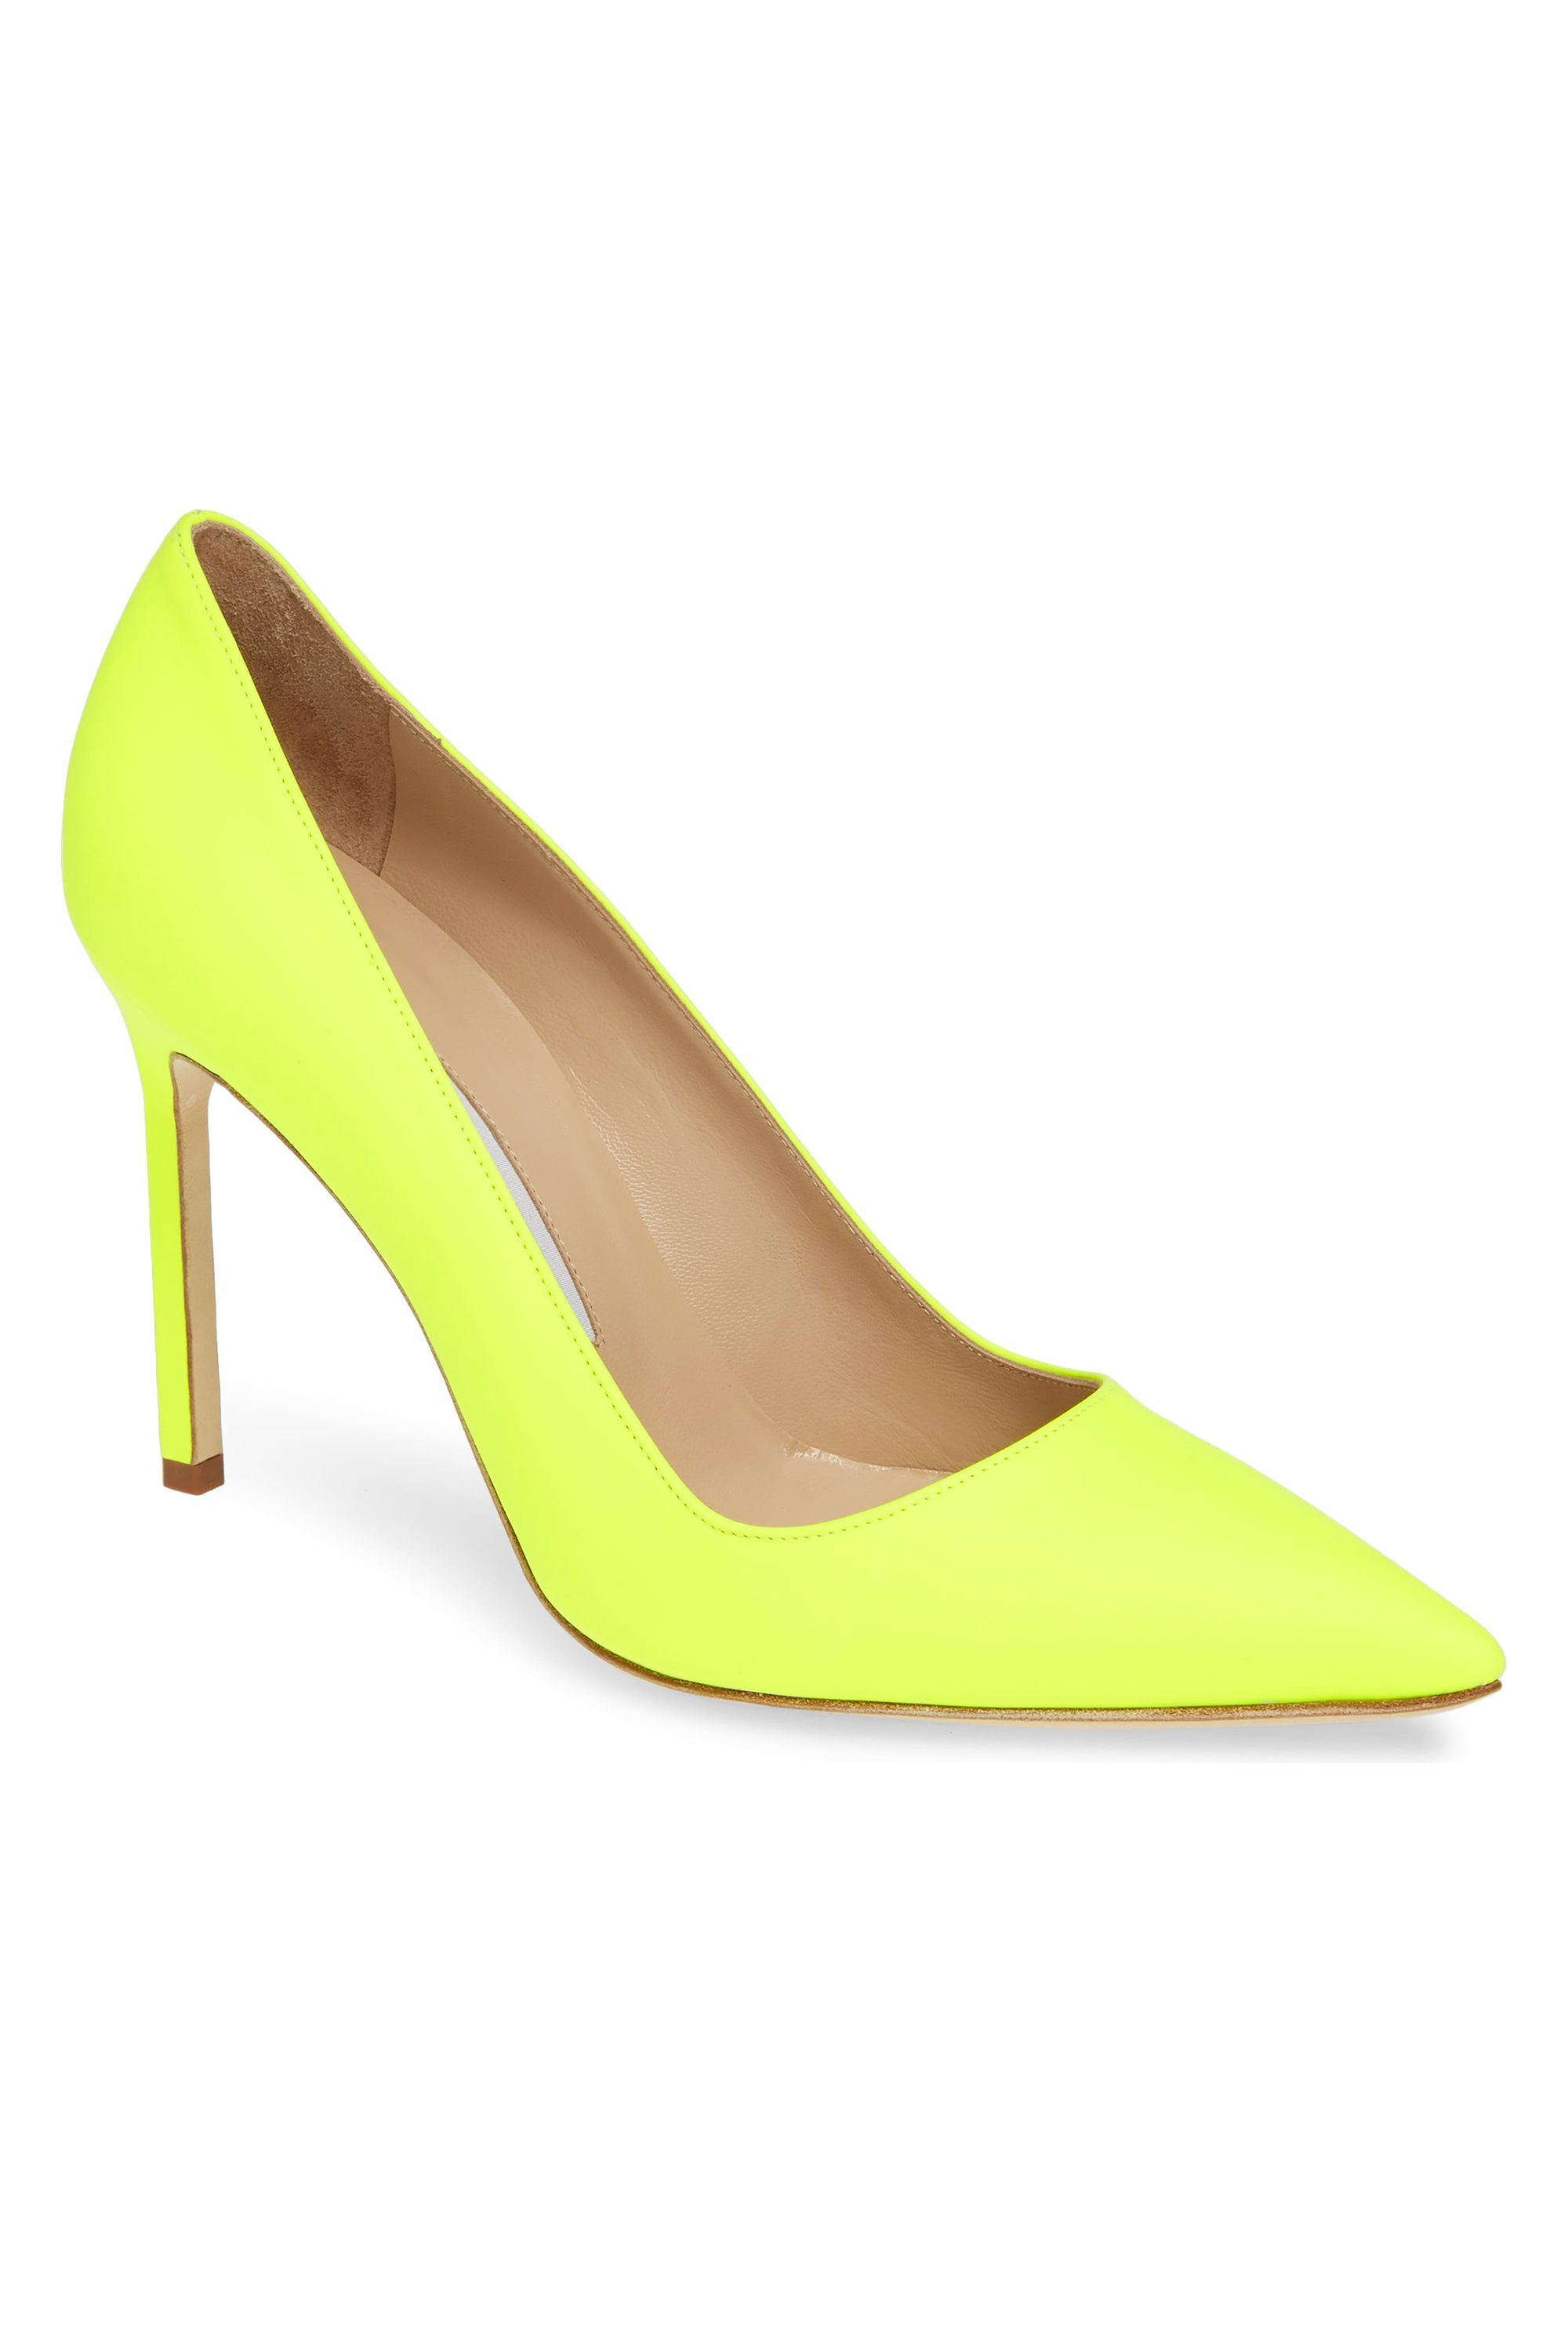 BB Pointy Toe Pump Manolo Blahnik, $374.98 nordstrom.com SHOP NOW